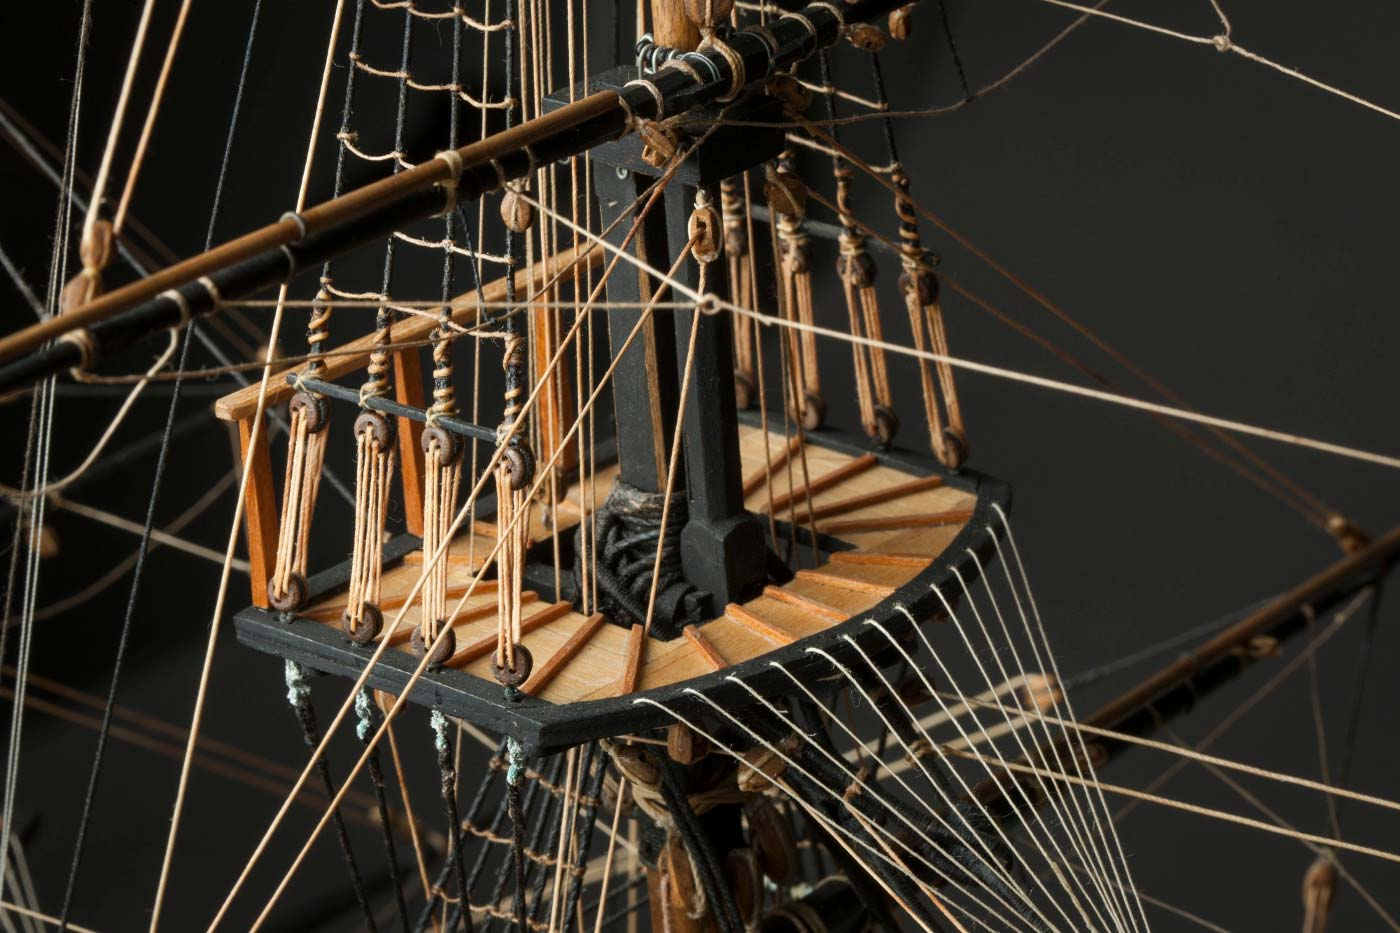 Detail image srom a small wooden sailing ship showing a platform on a mast, surrounded by rope rigging. - click to view larger image